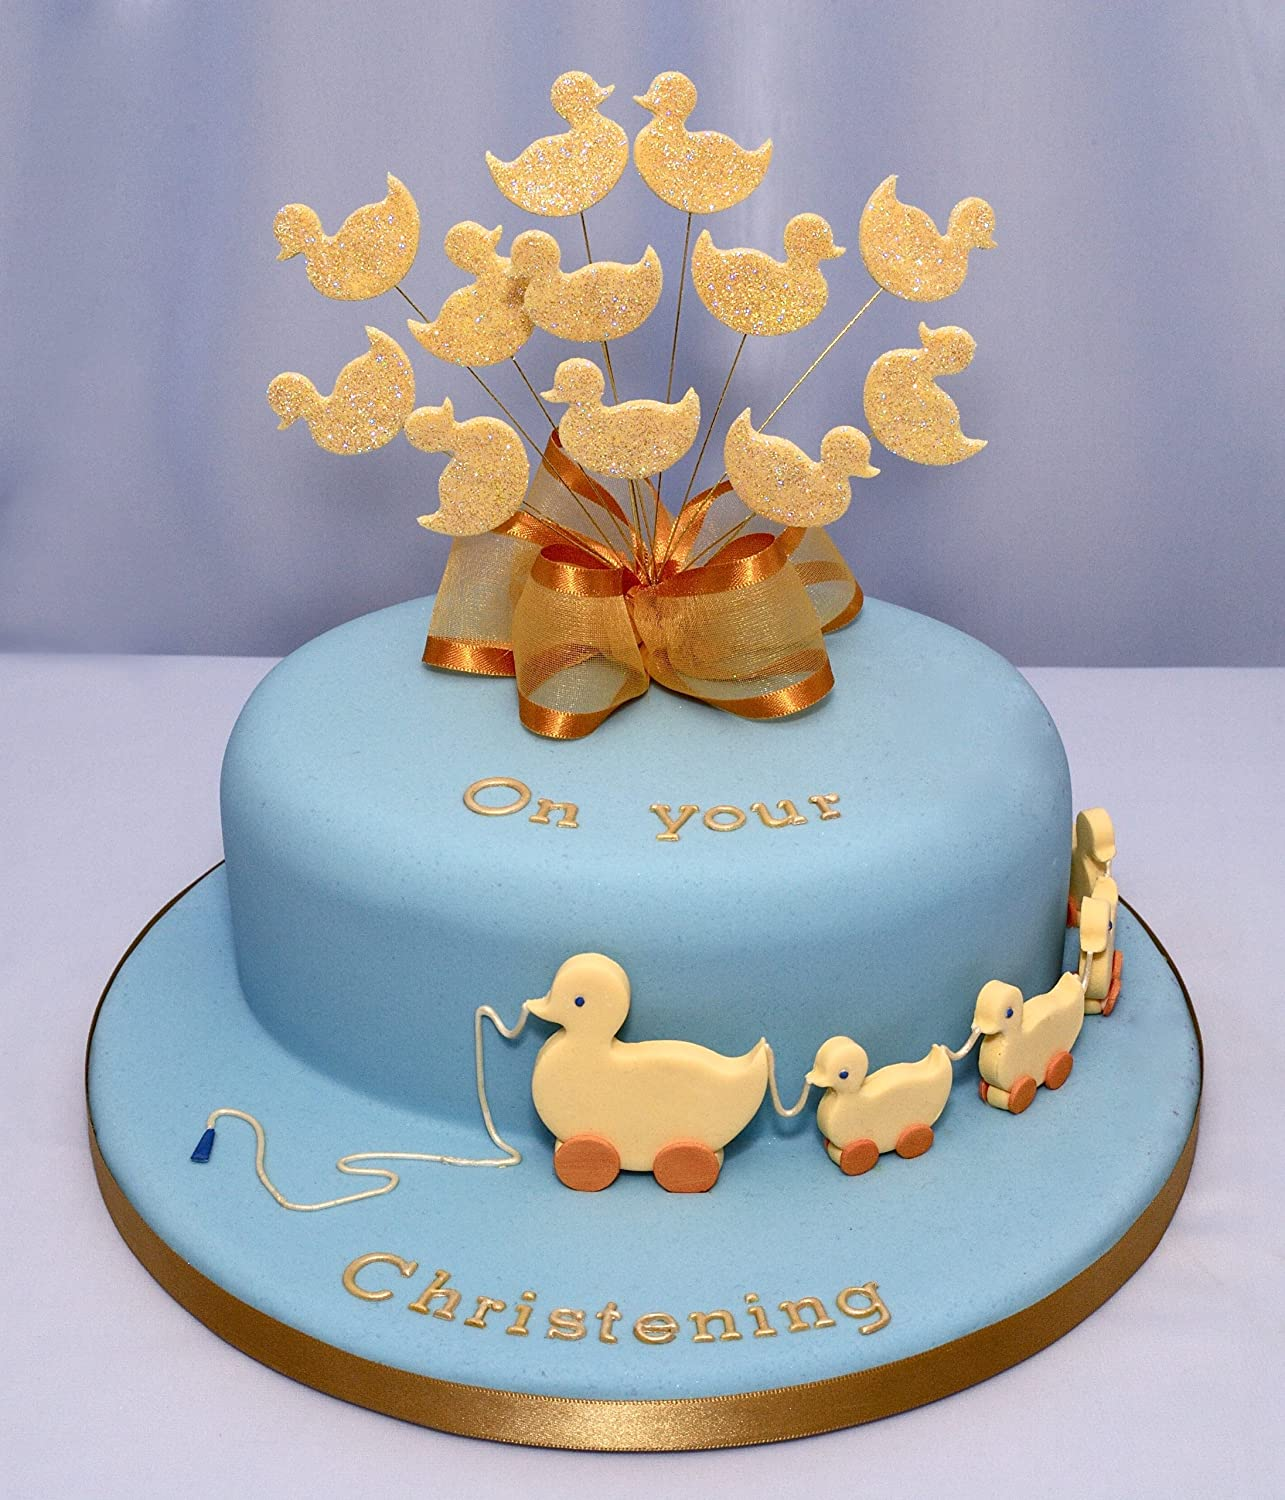 Sugarcraft & Cake Decorating Cutters -Two Toy Duck shape cutters for ...